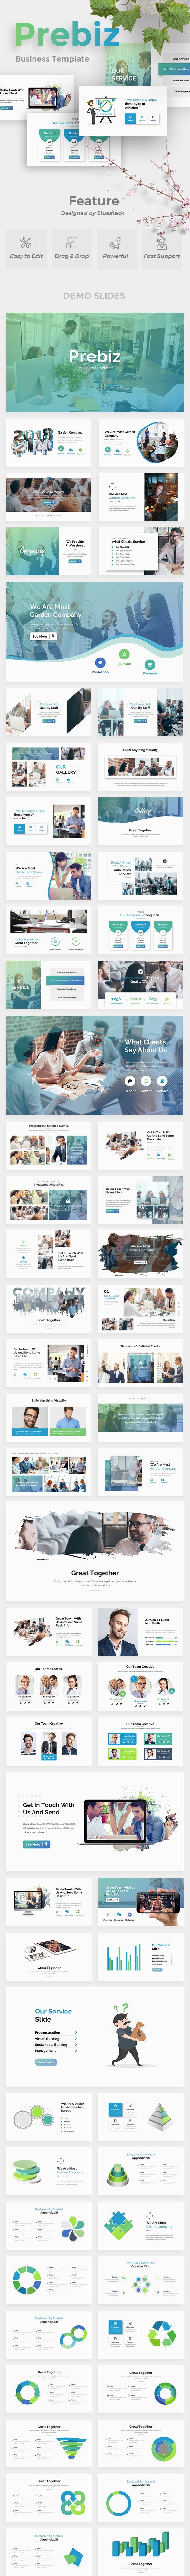 Prebiz Business Google Slide Template